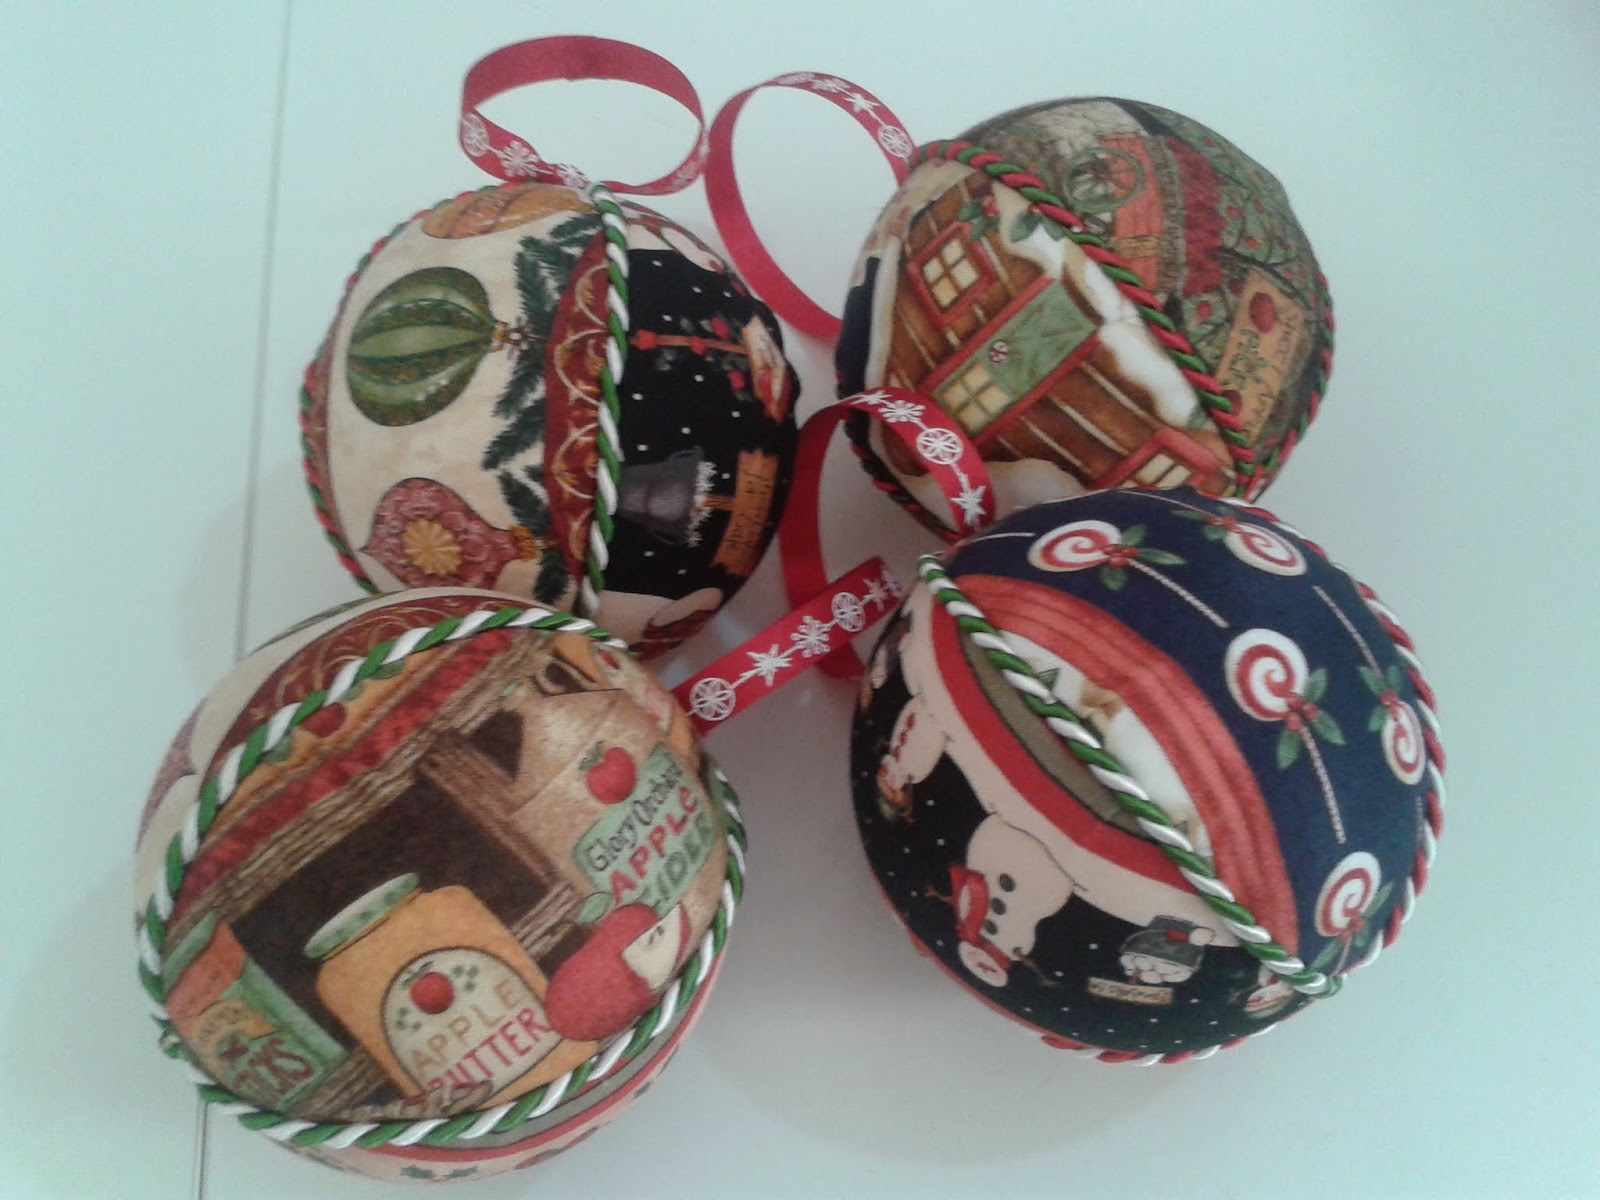 Super Palline di natale in stoffa | Fracakes baked with love TN35